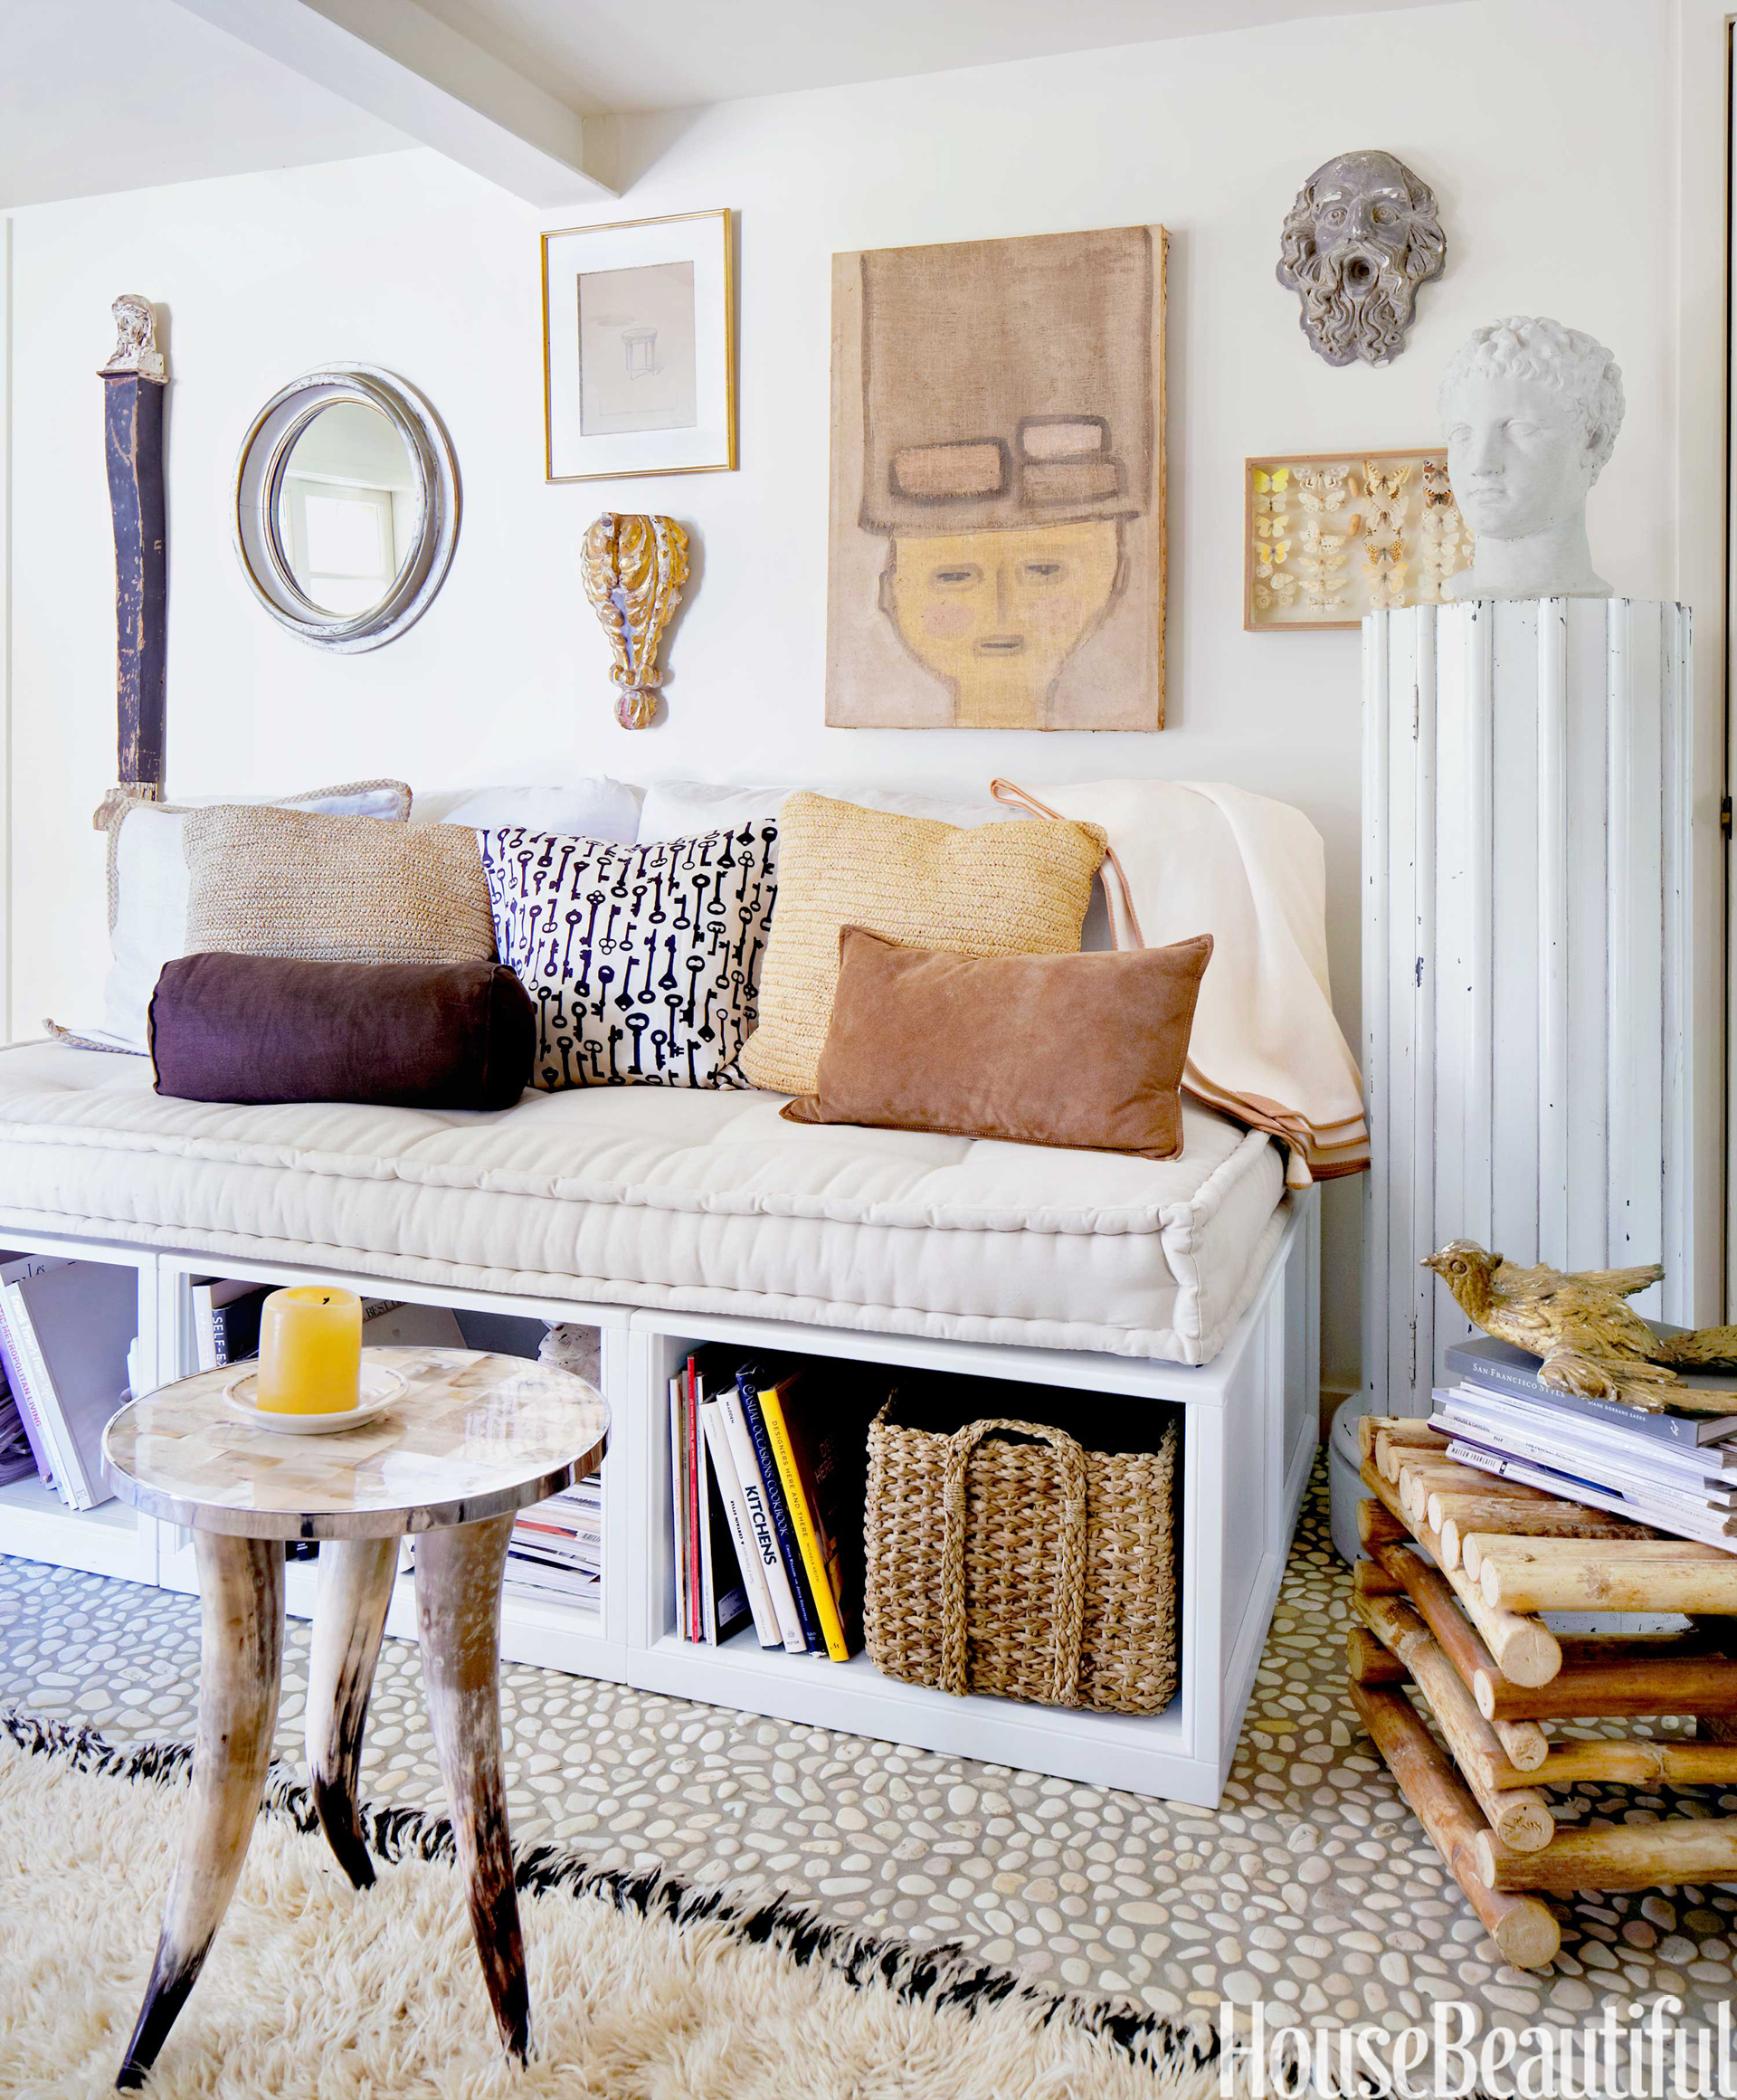 Small space design ideas how to make the most of a small for How to make your small room beautiful